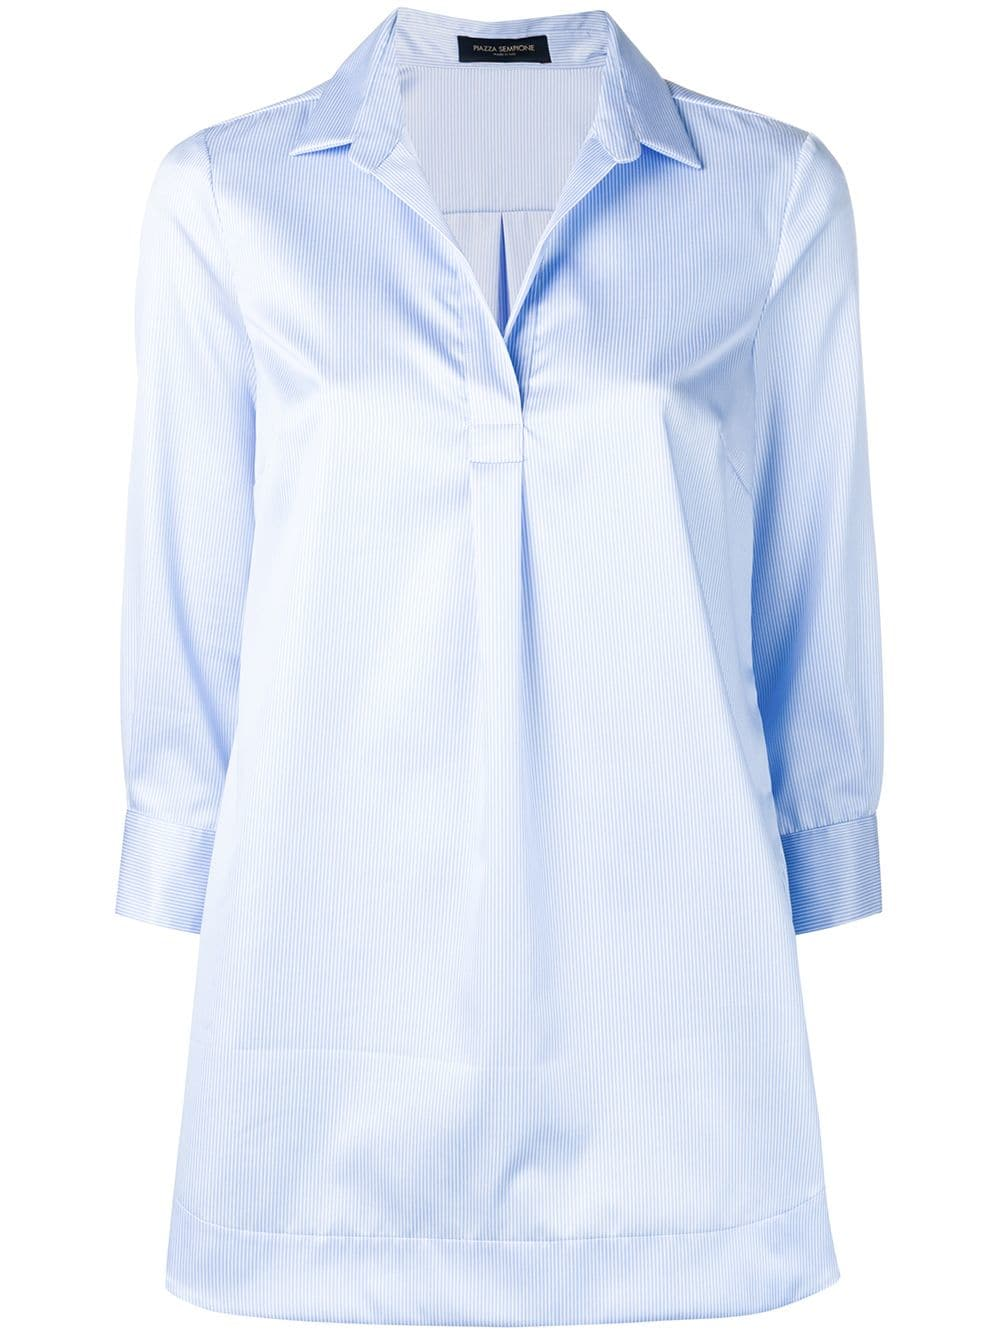 7b8a86030ef1 V-Neck Blouse With White And Light Blue Stripes - PIAZZA SEMPIONE -  Russocapri